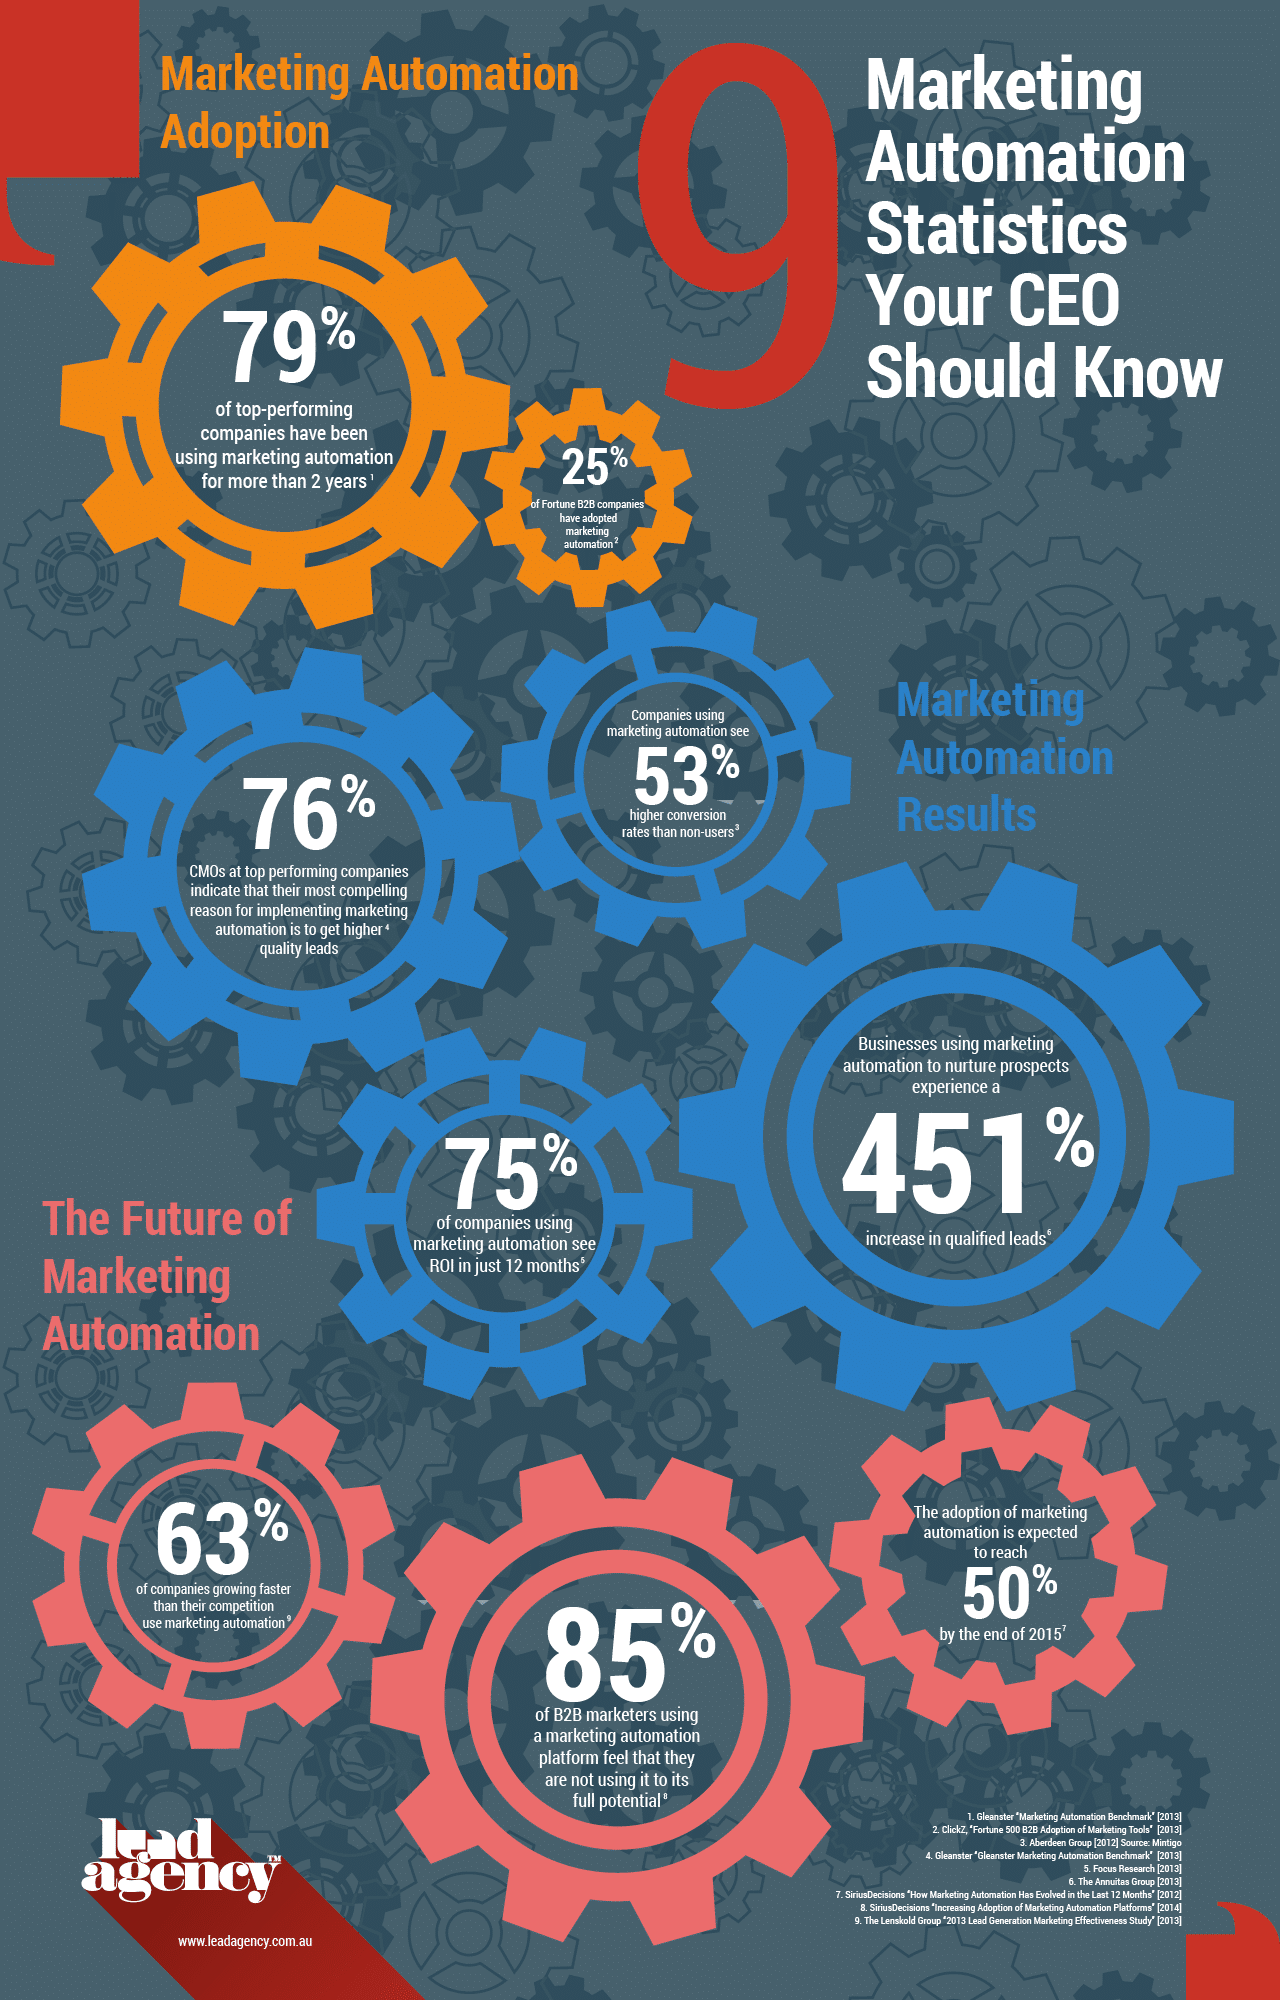 9 Marketing Automation Stats You Should Know